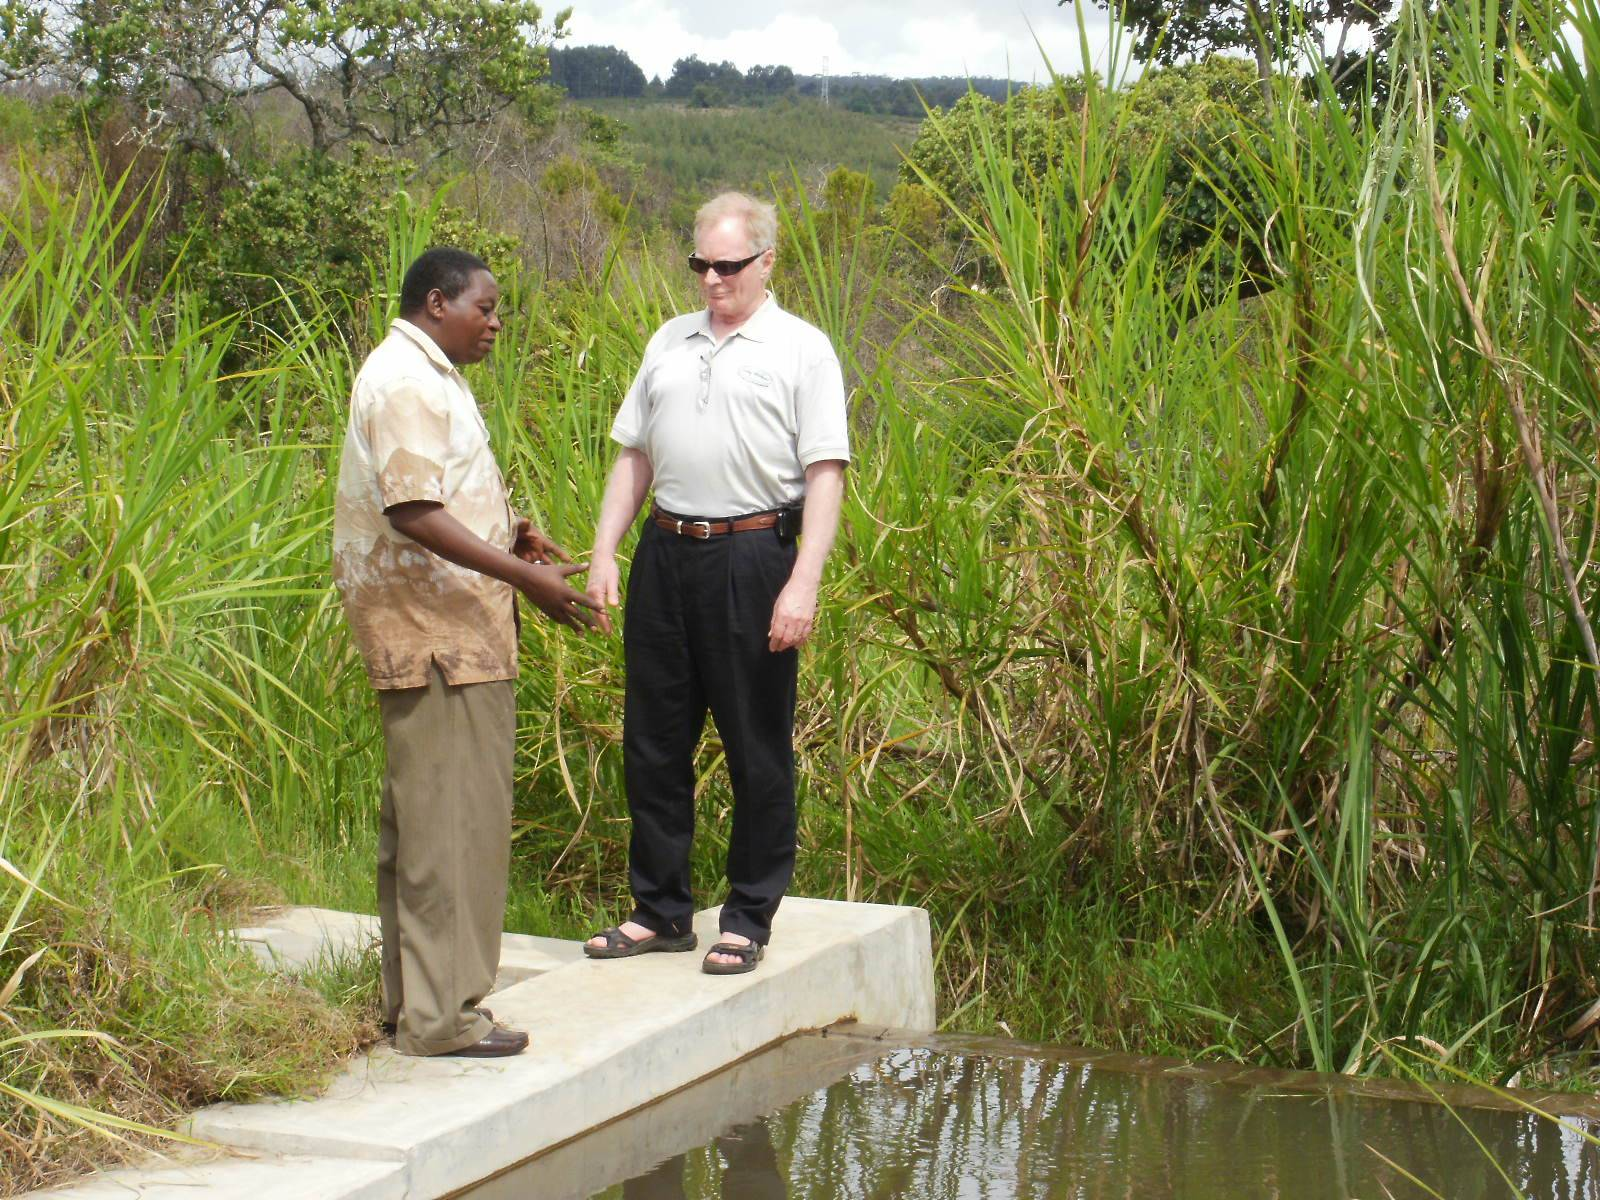 Bud Philbrook, Global Volunteers CEO, visits with Pastor Sagga at the Pommern Water Project intake.